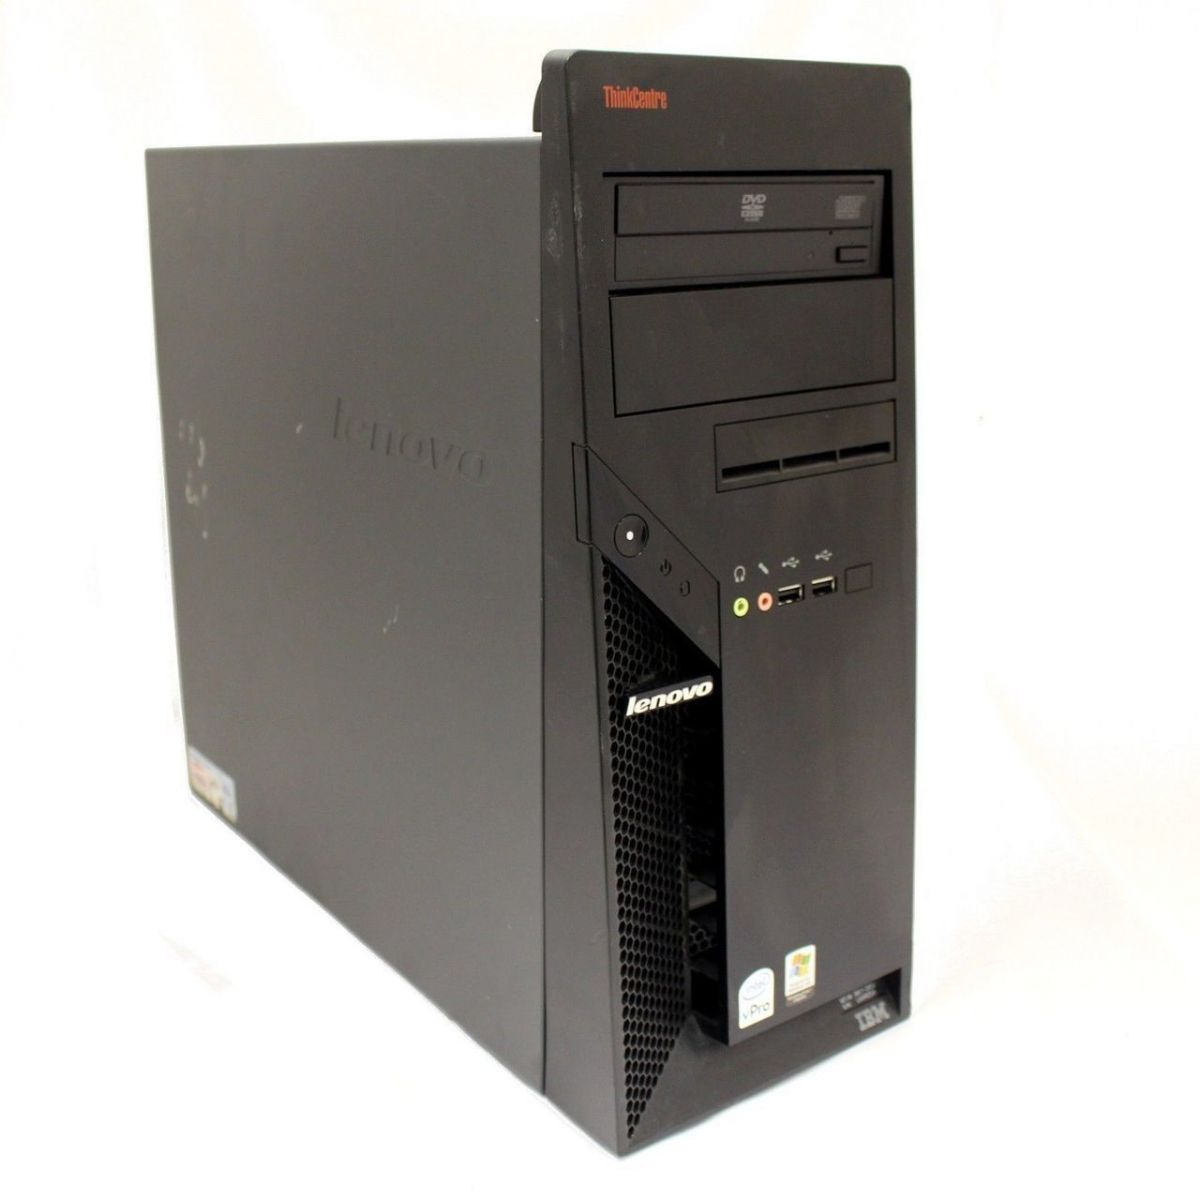 Lenovo Thinkcenter M55p